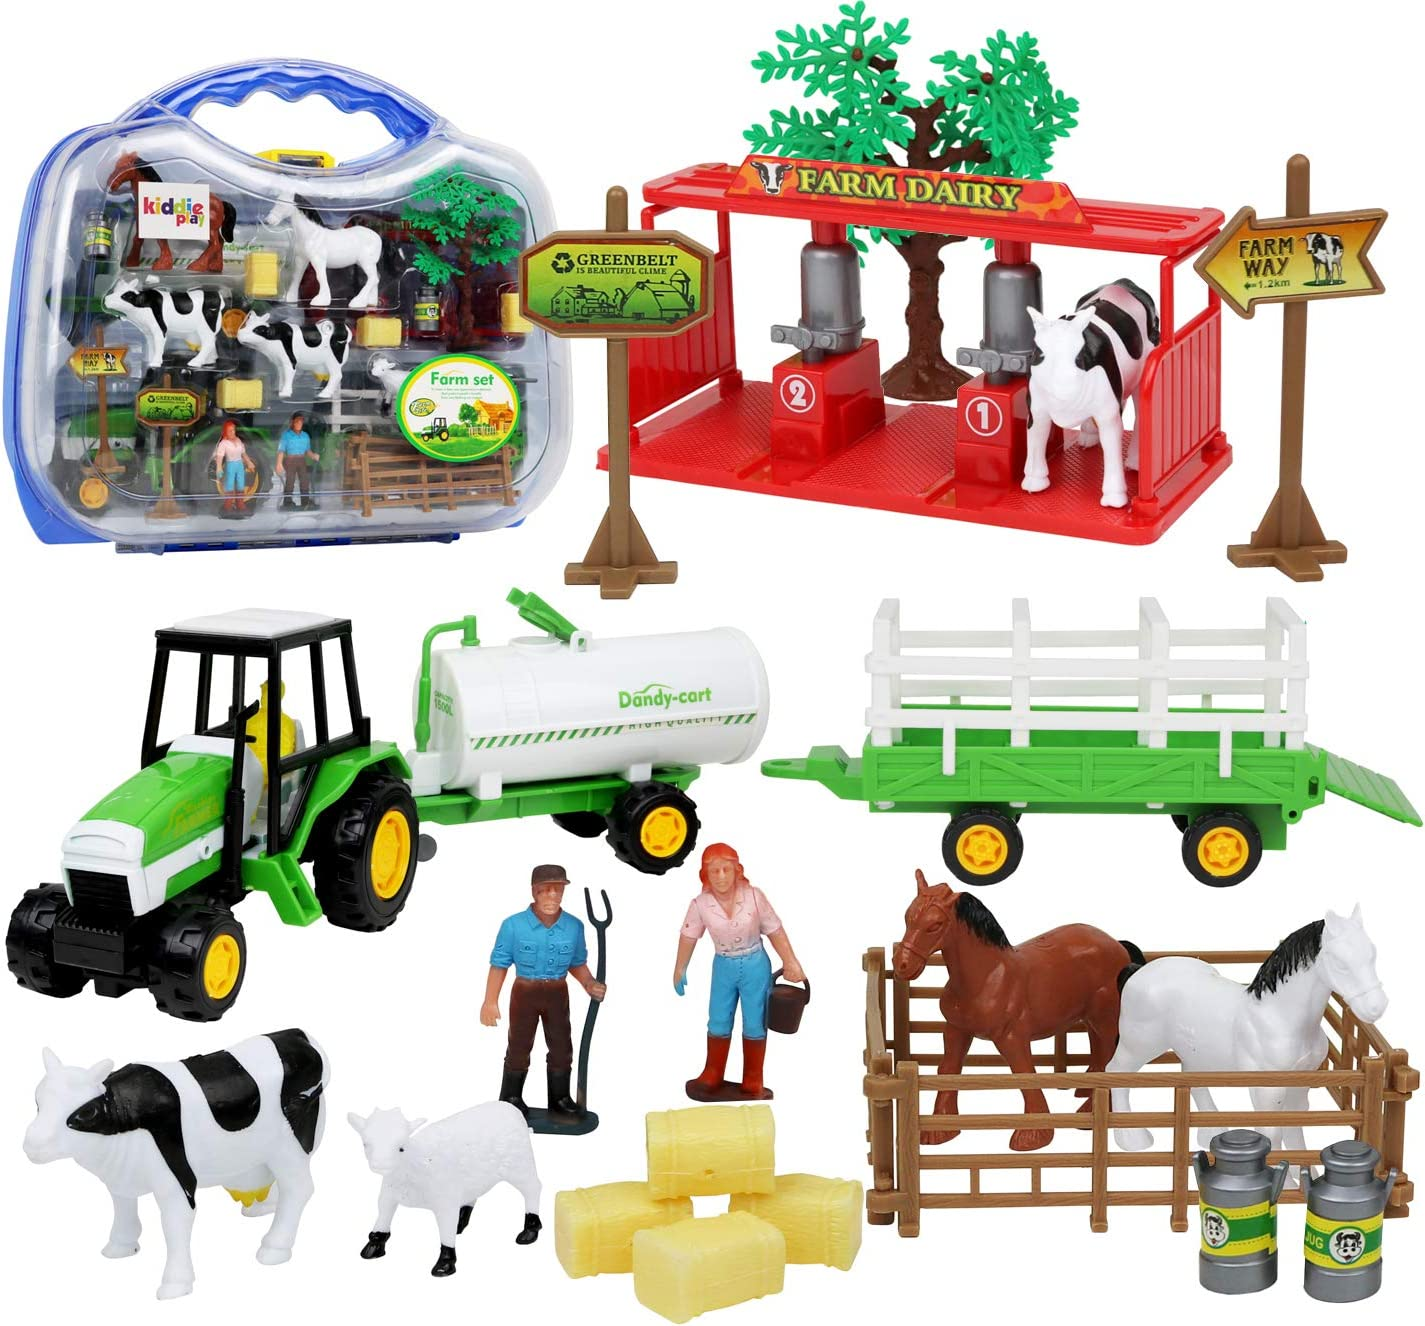 Kiddie Play Farm Toys Tulsa Fees free!! Mall Set with Toddlers Animals for Pie 25